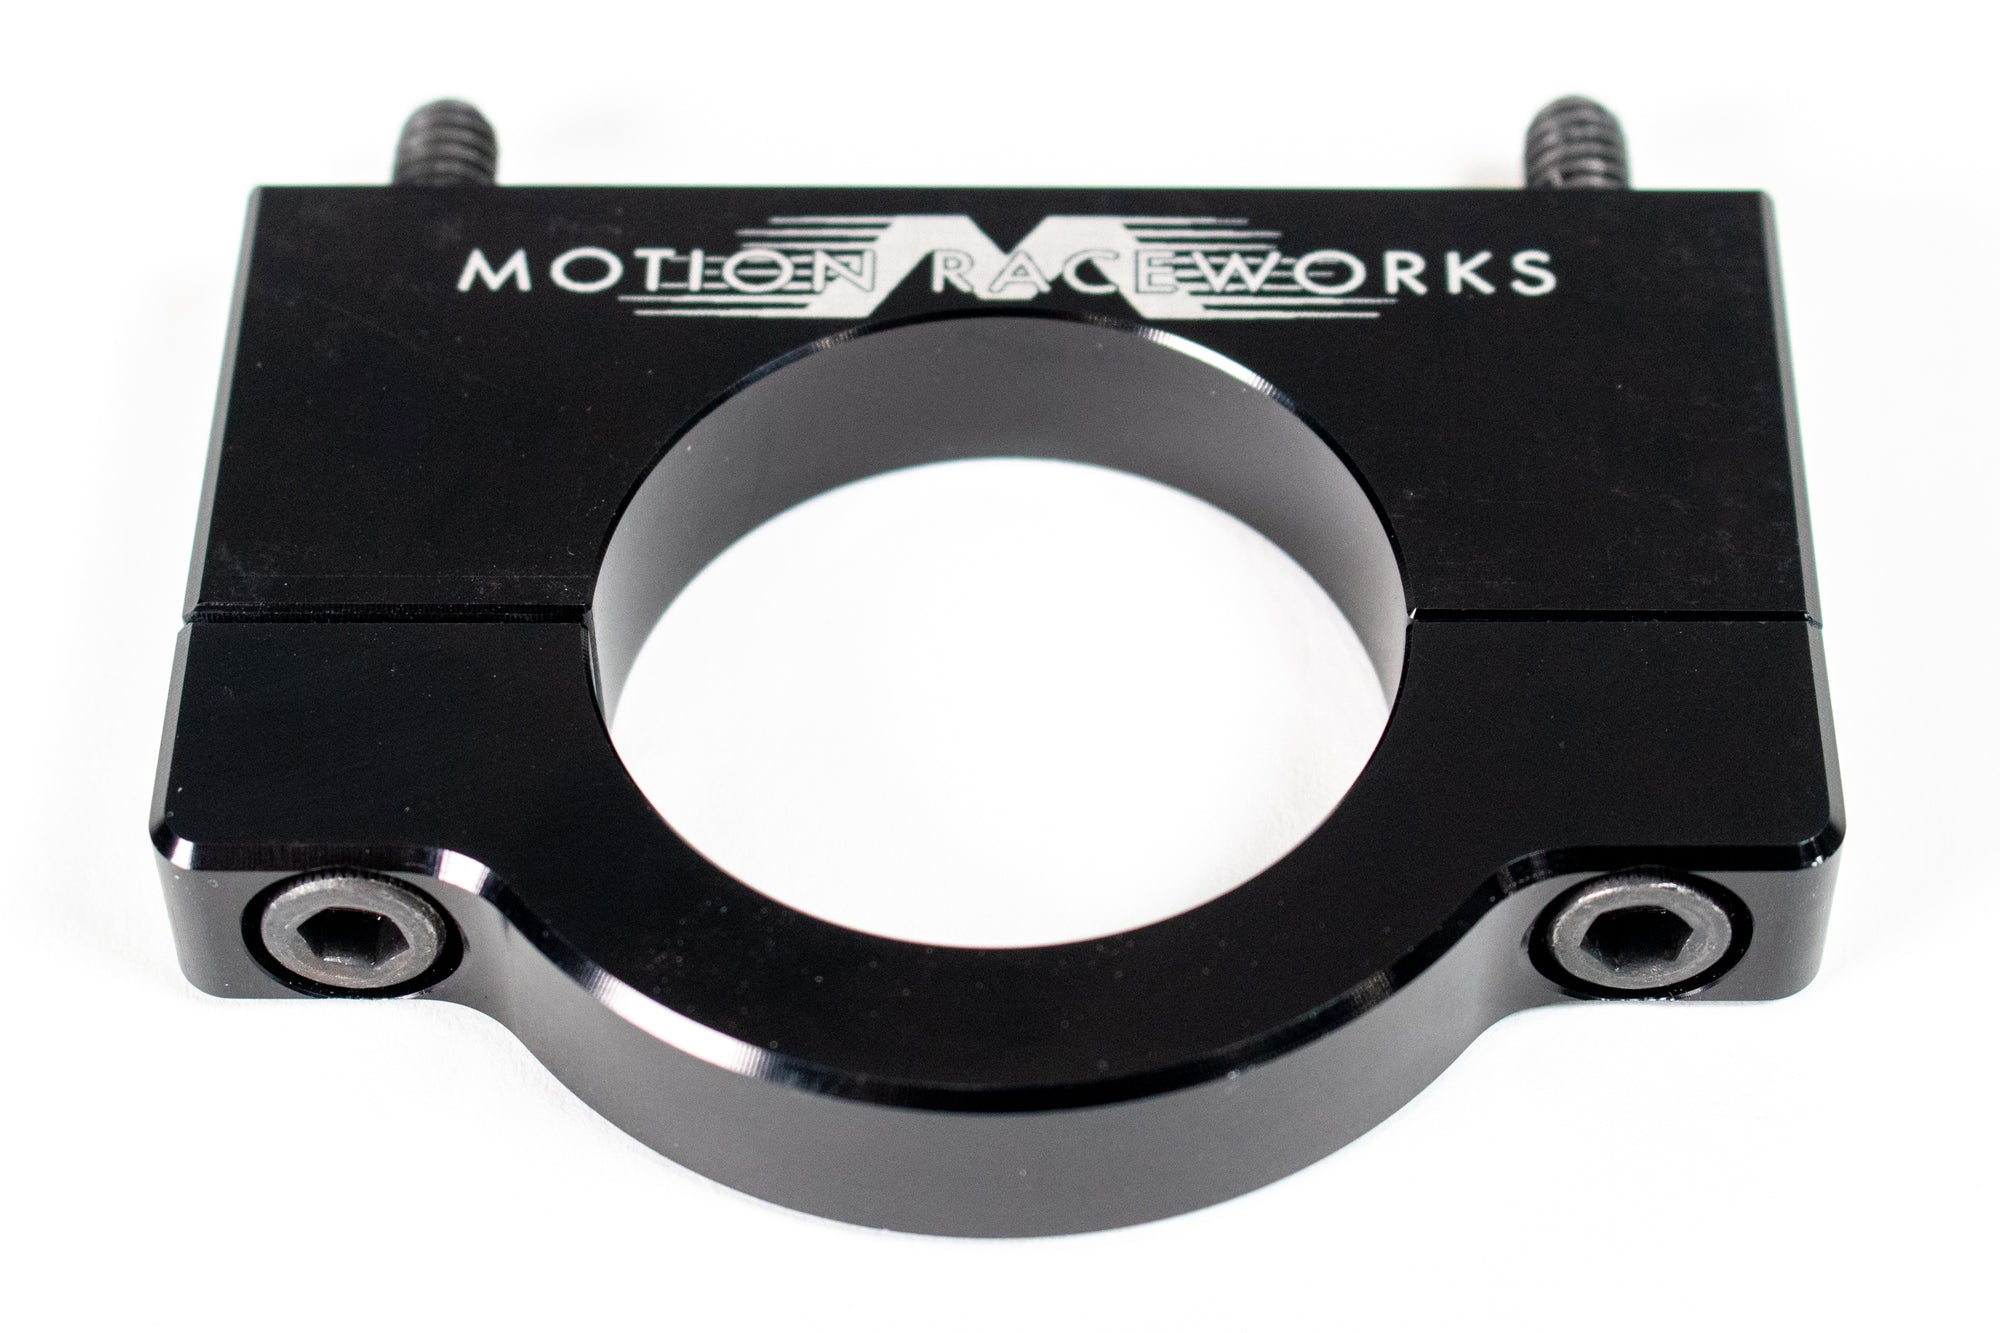 Motion Raceworks 1 1/2 Roll bar mount 1812002-Motion Raceworks-Motion Raceworks